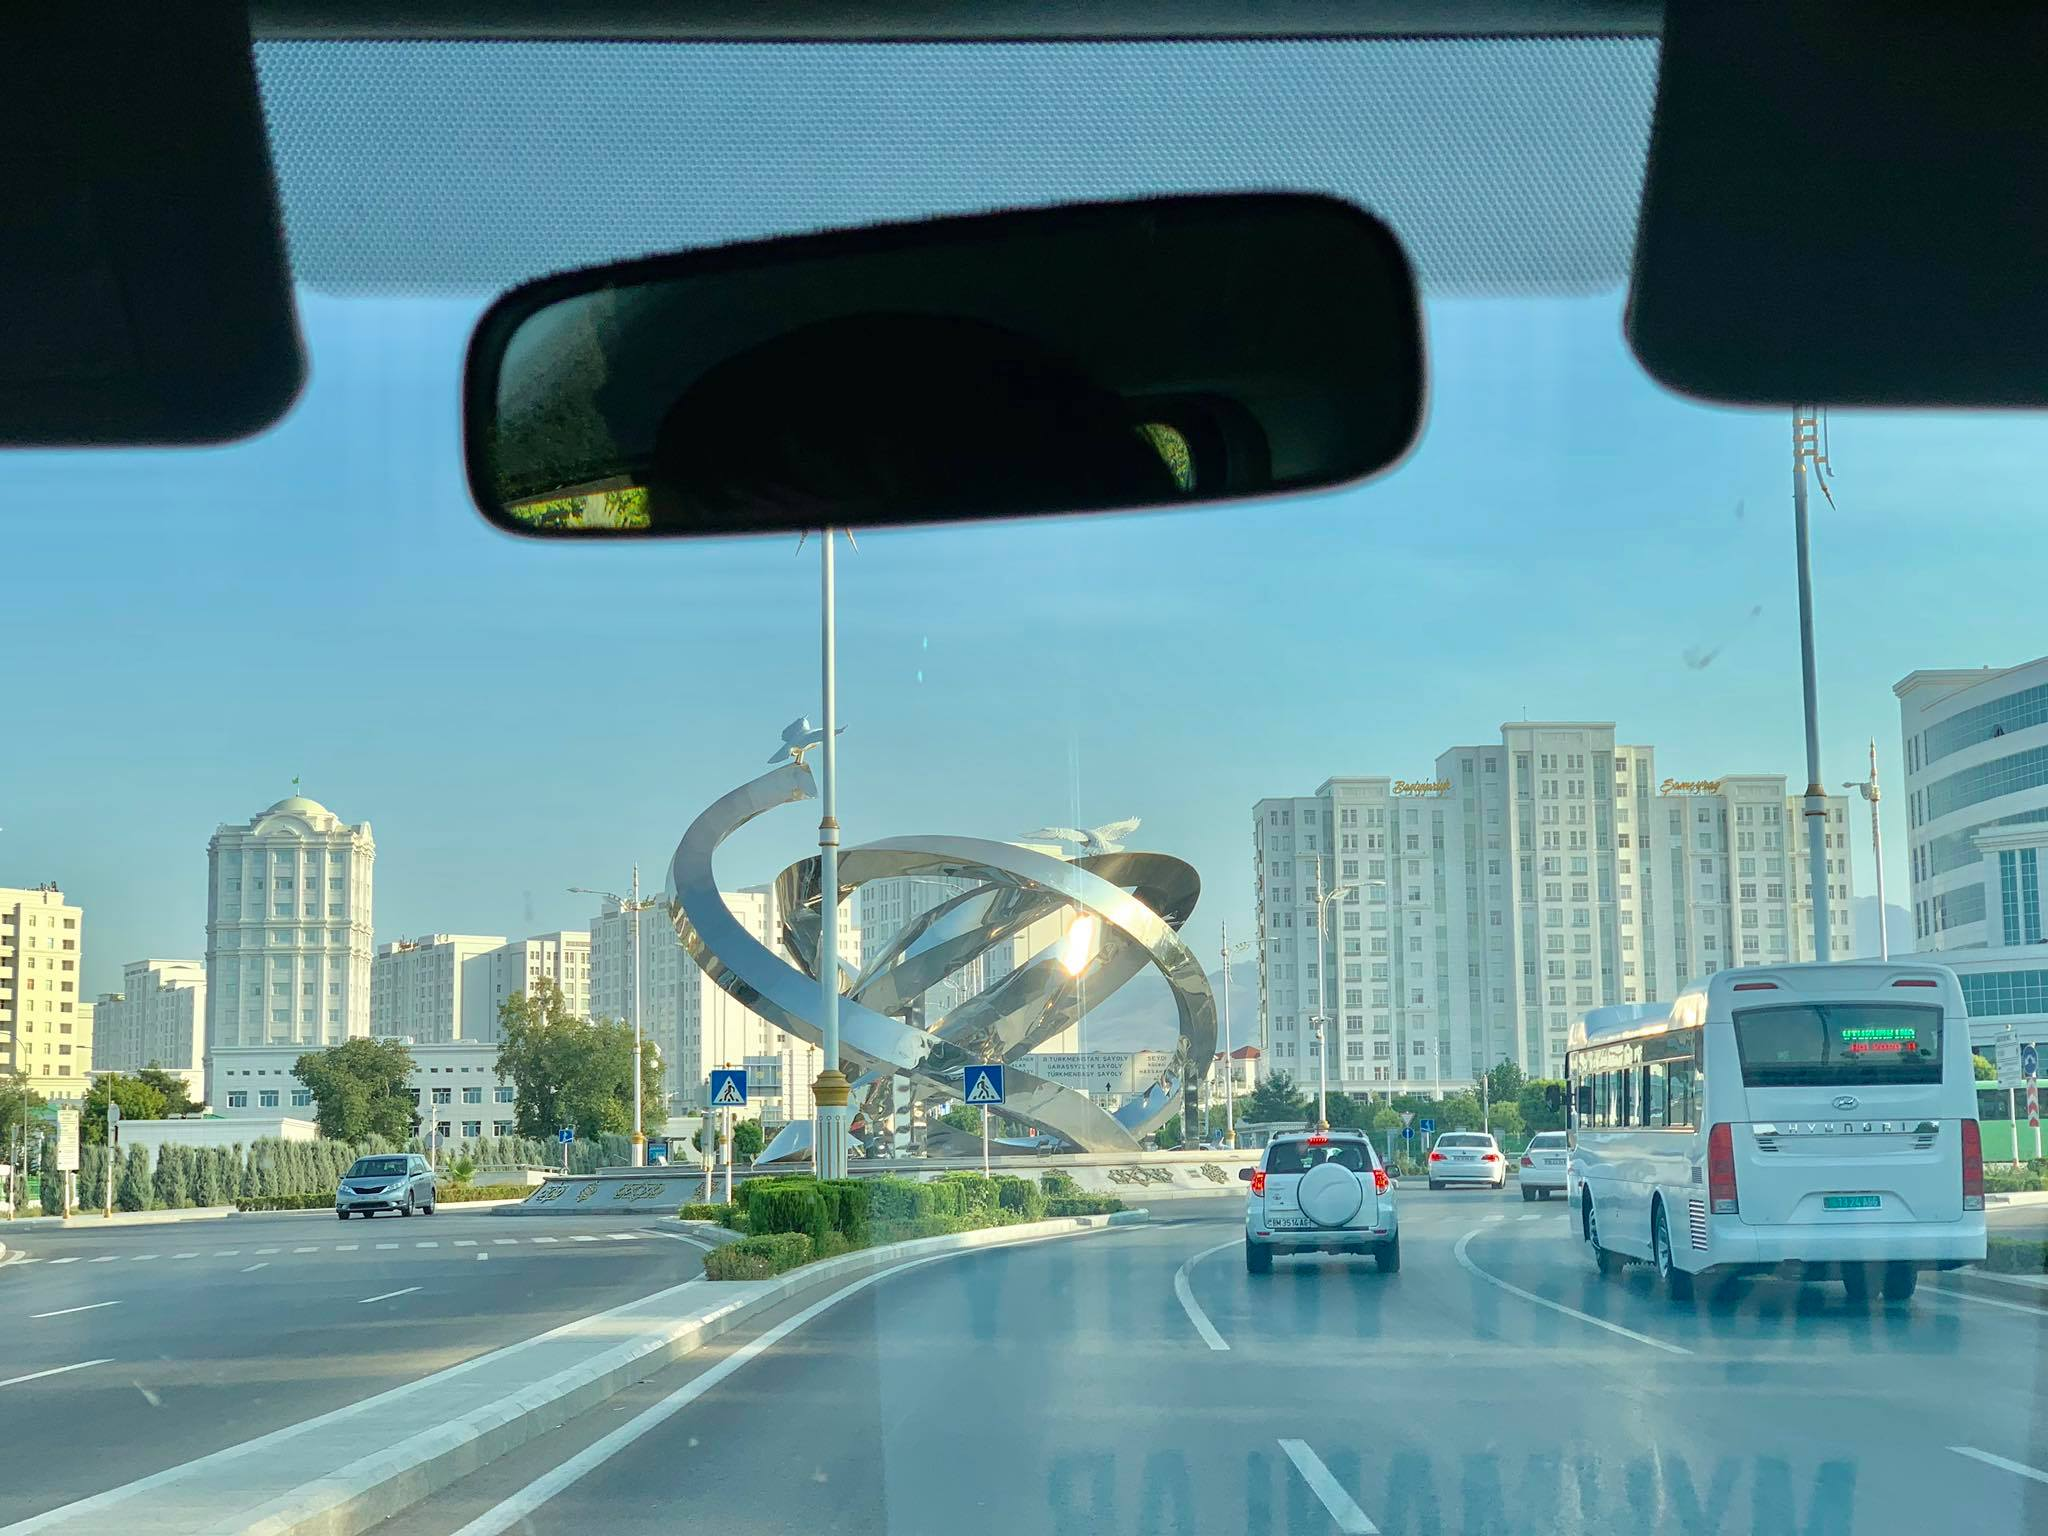 Kach Solo Travels in 2019 Quick tour around the capital, Ashgabat22.jpg